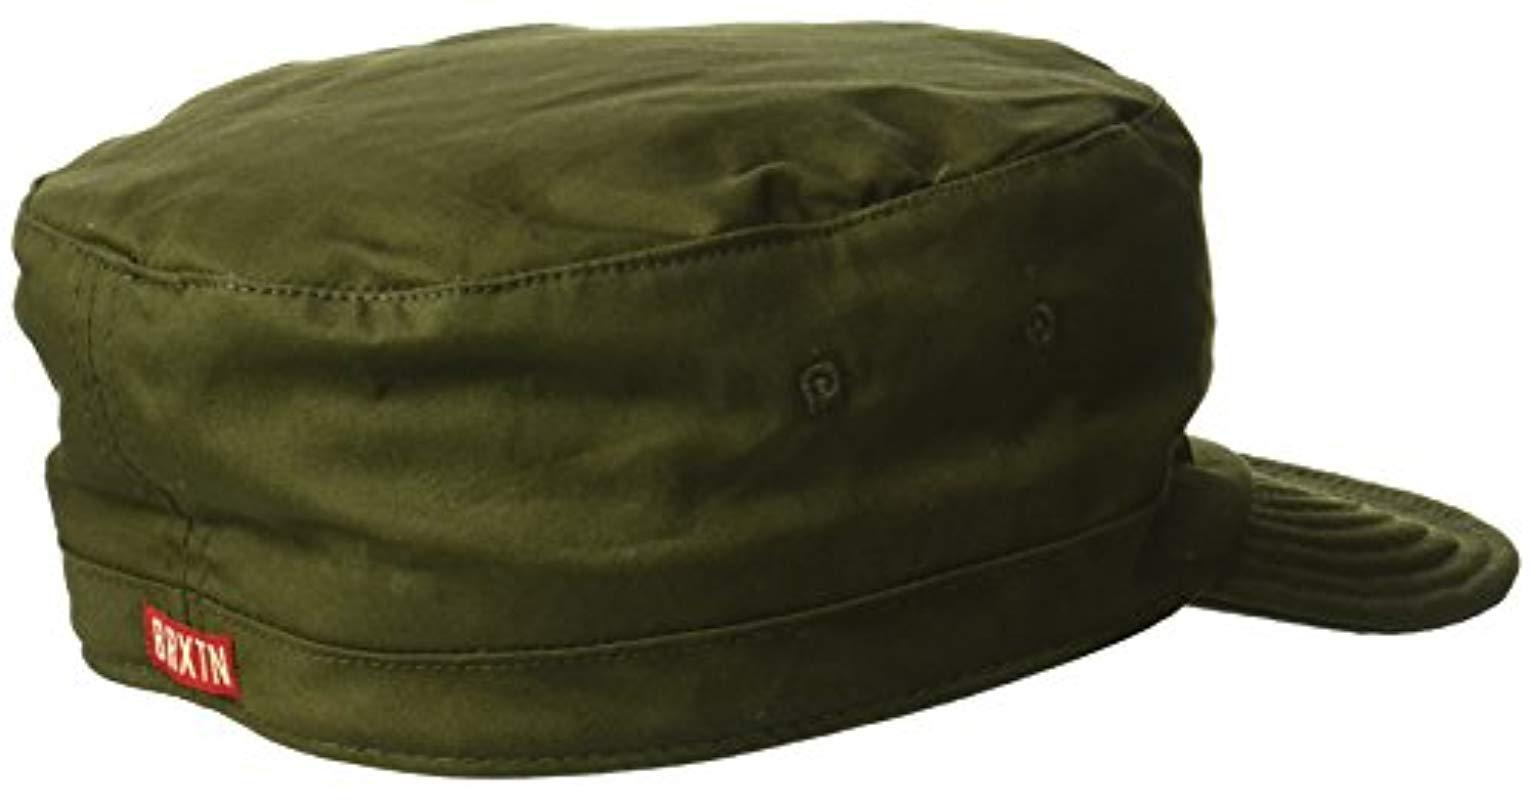 Lyst - Brixton Brigade Unstructured Military Style Hat in Green for Men 01fa4e54cf7